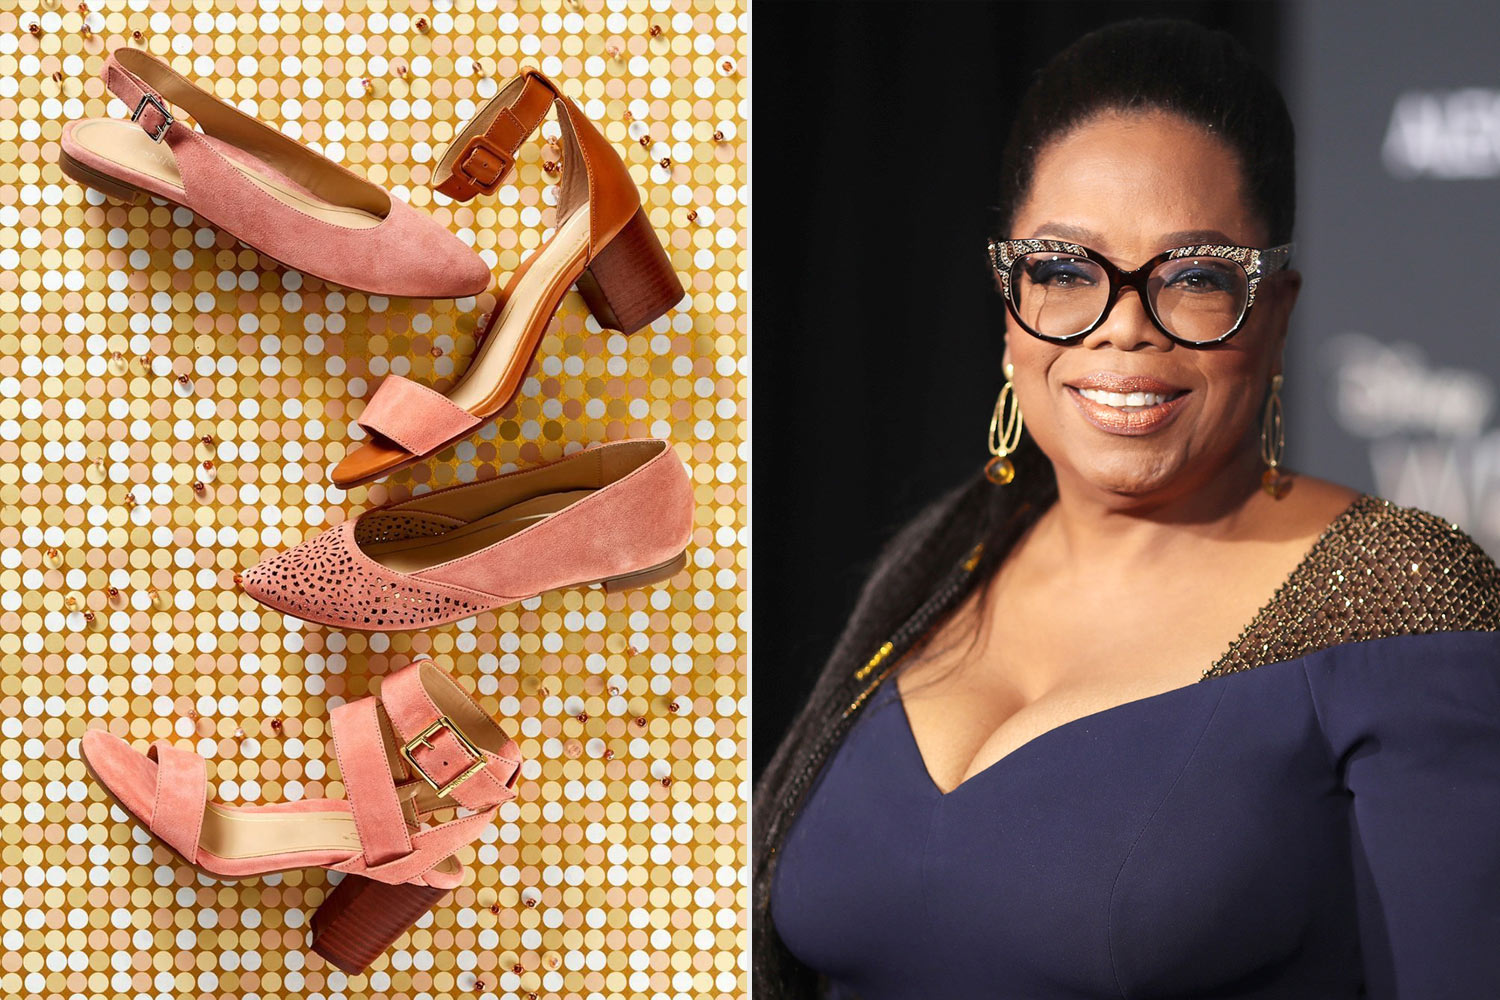 The Podiatrist-Approved Comfy Shoe Brand Oprah Loves Is on Major Sale for Prime Day—But Only Until Tonight